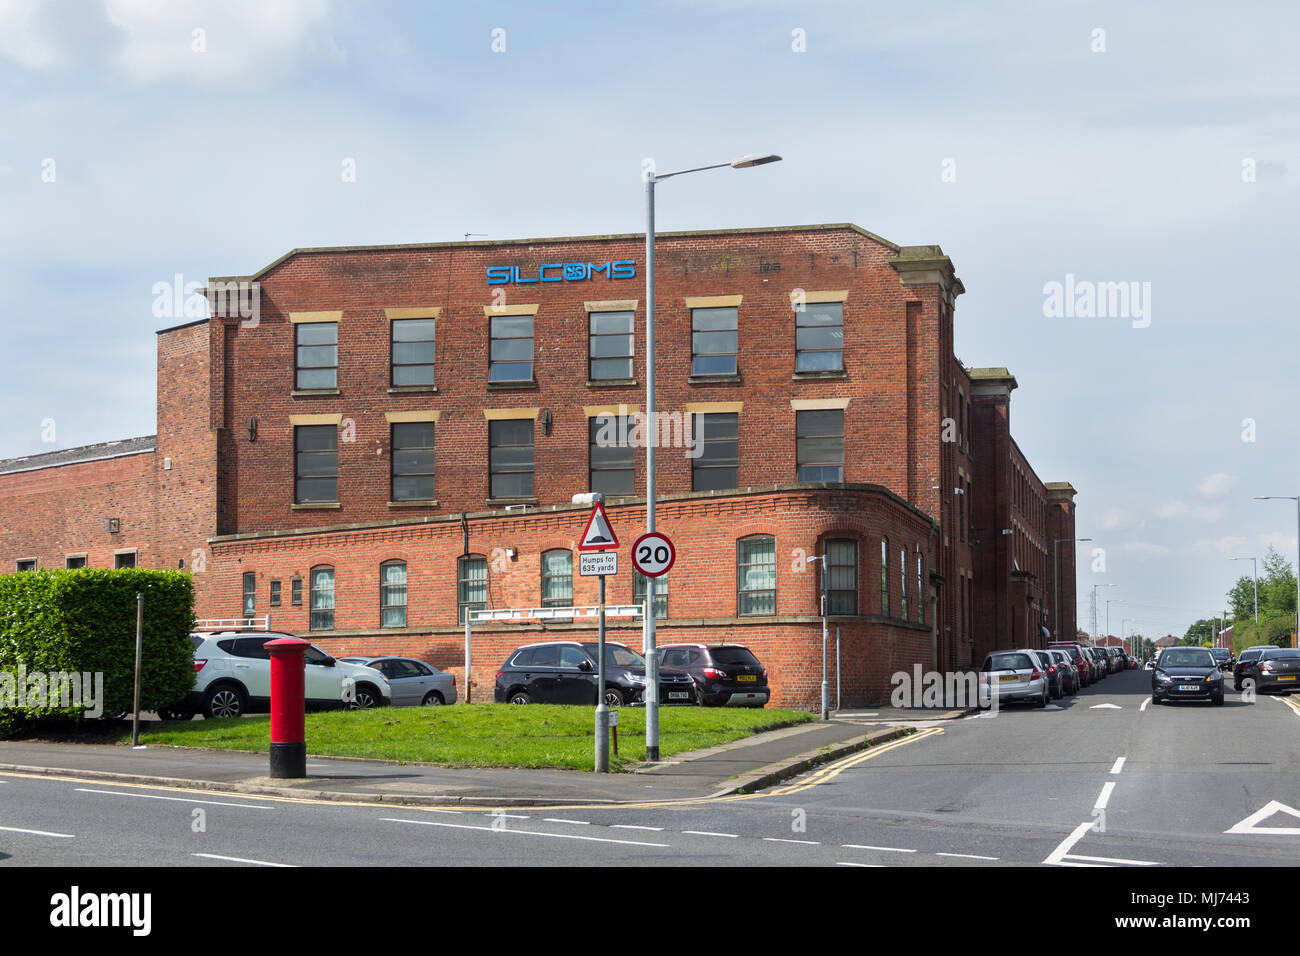 Exterior of Silcoms Ltd, Farnworth. Silcoms was established in 1939, an engineering manufacturer, specialising in the aerospace engine components. - Stock Image